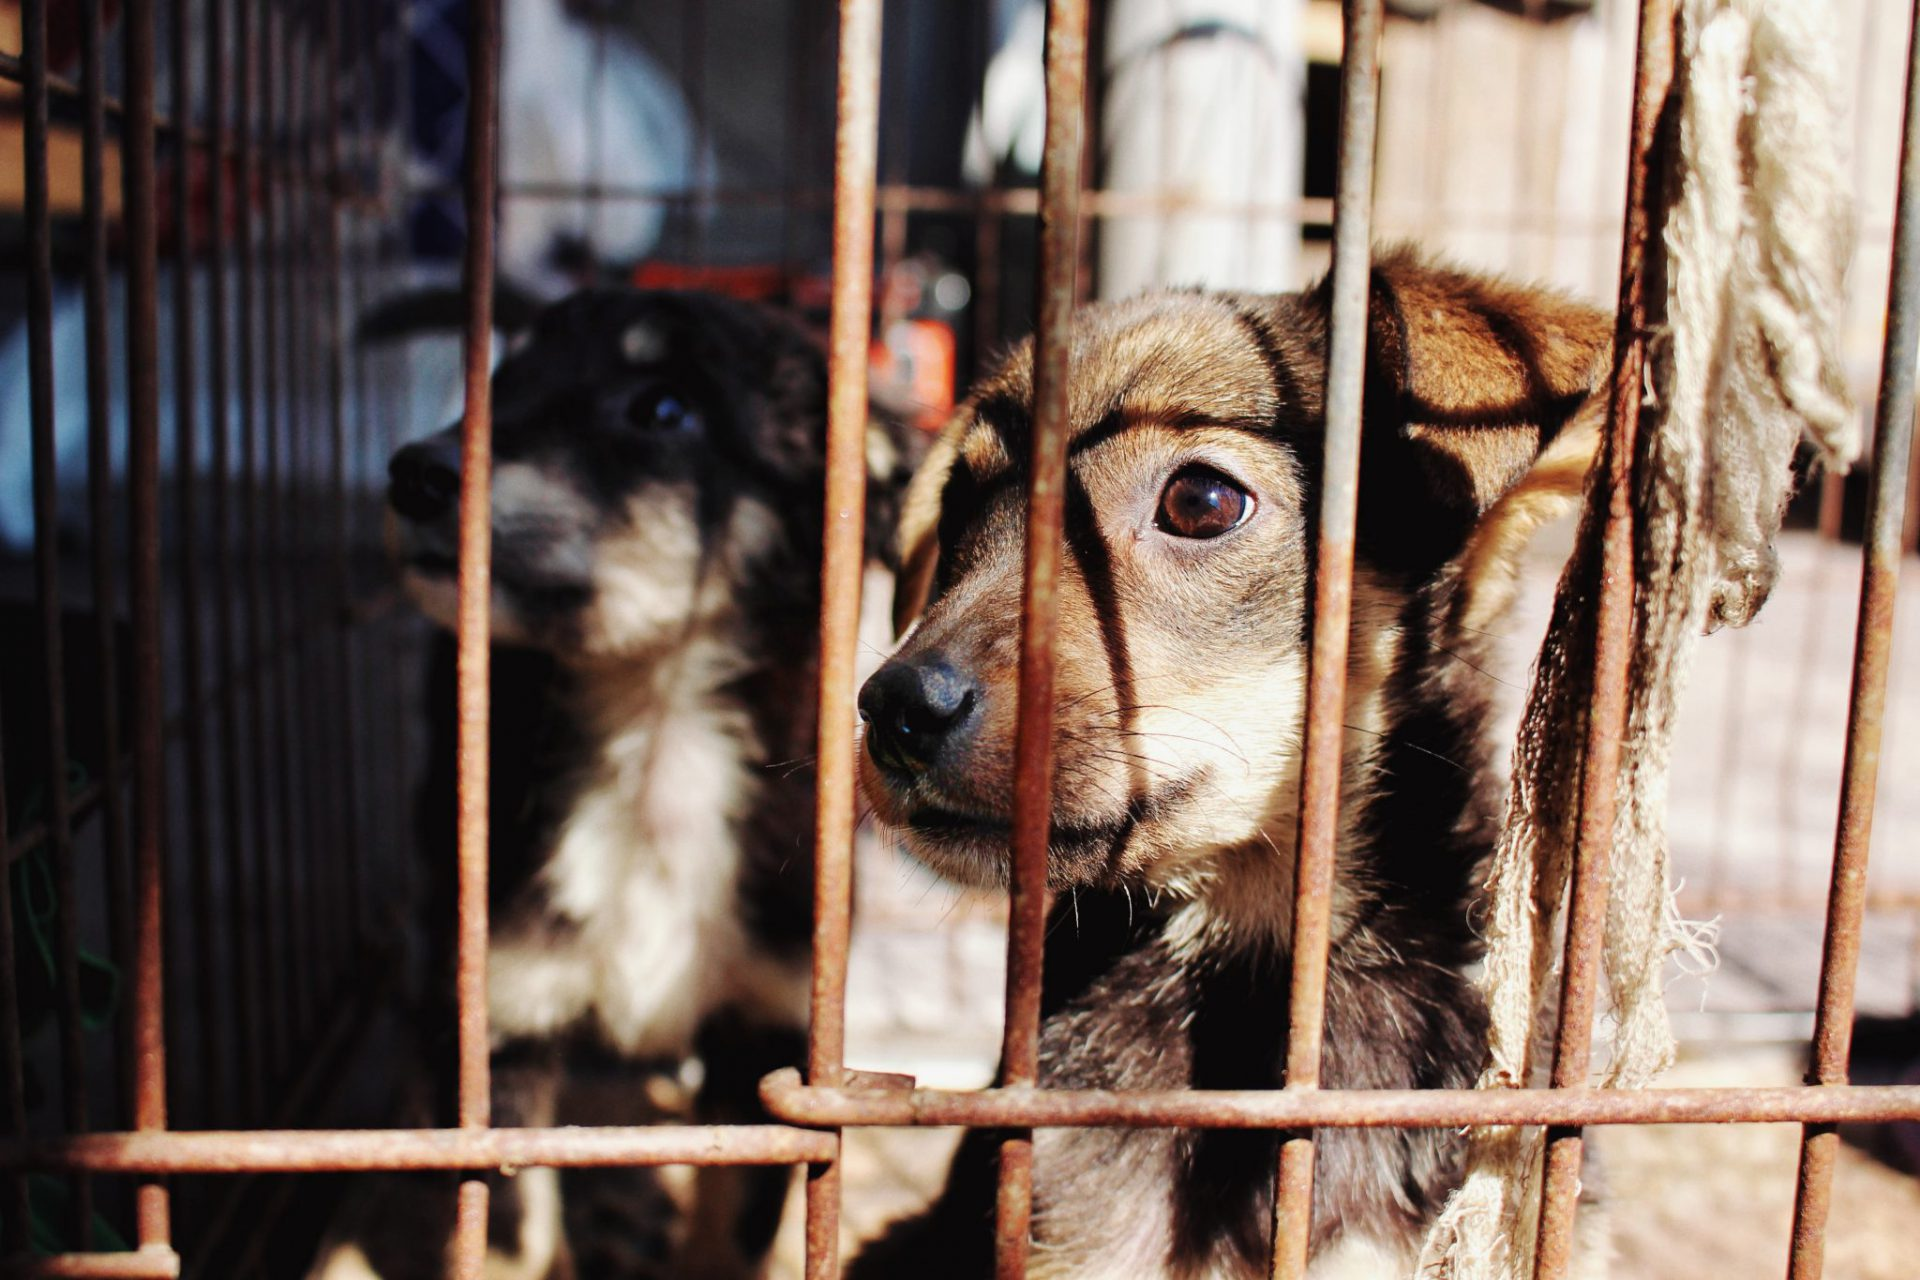 puppies in puppy mill behind cage